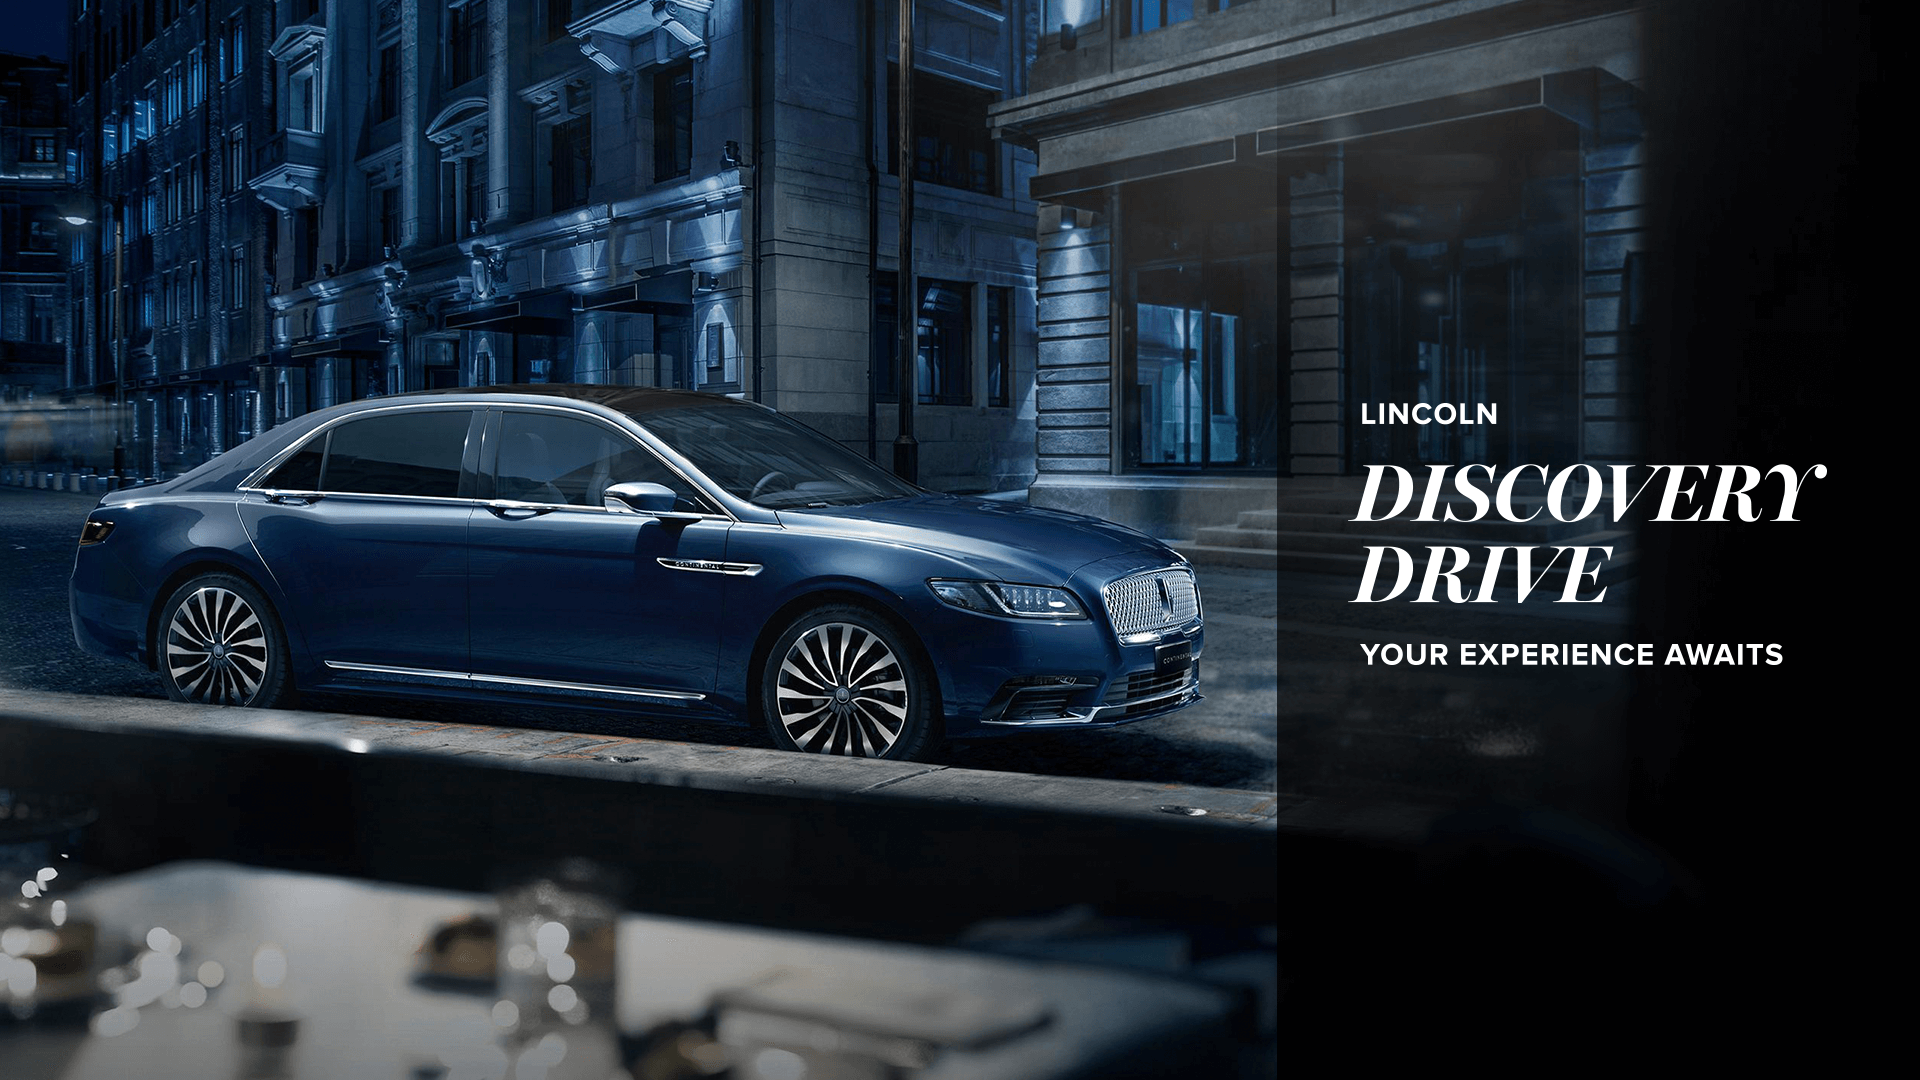 Text: Lincoln Discovery Drive. Your experience awaits. Image: Photo of a blue Lincoln car parked on a roadside. View is from within a restaurant window. The set table is visible in the foreground. It's night time and the tone of the photo is very blue.